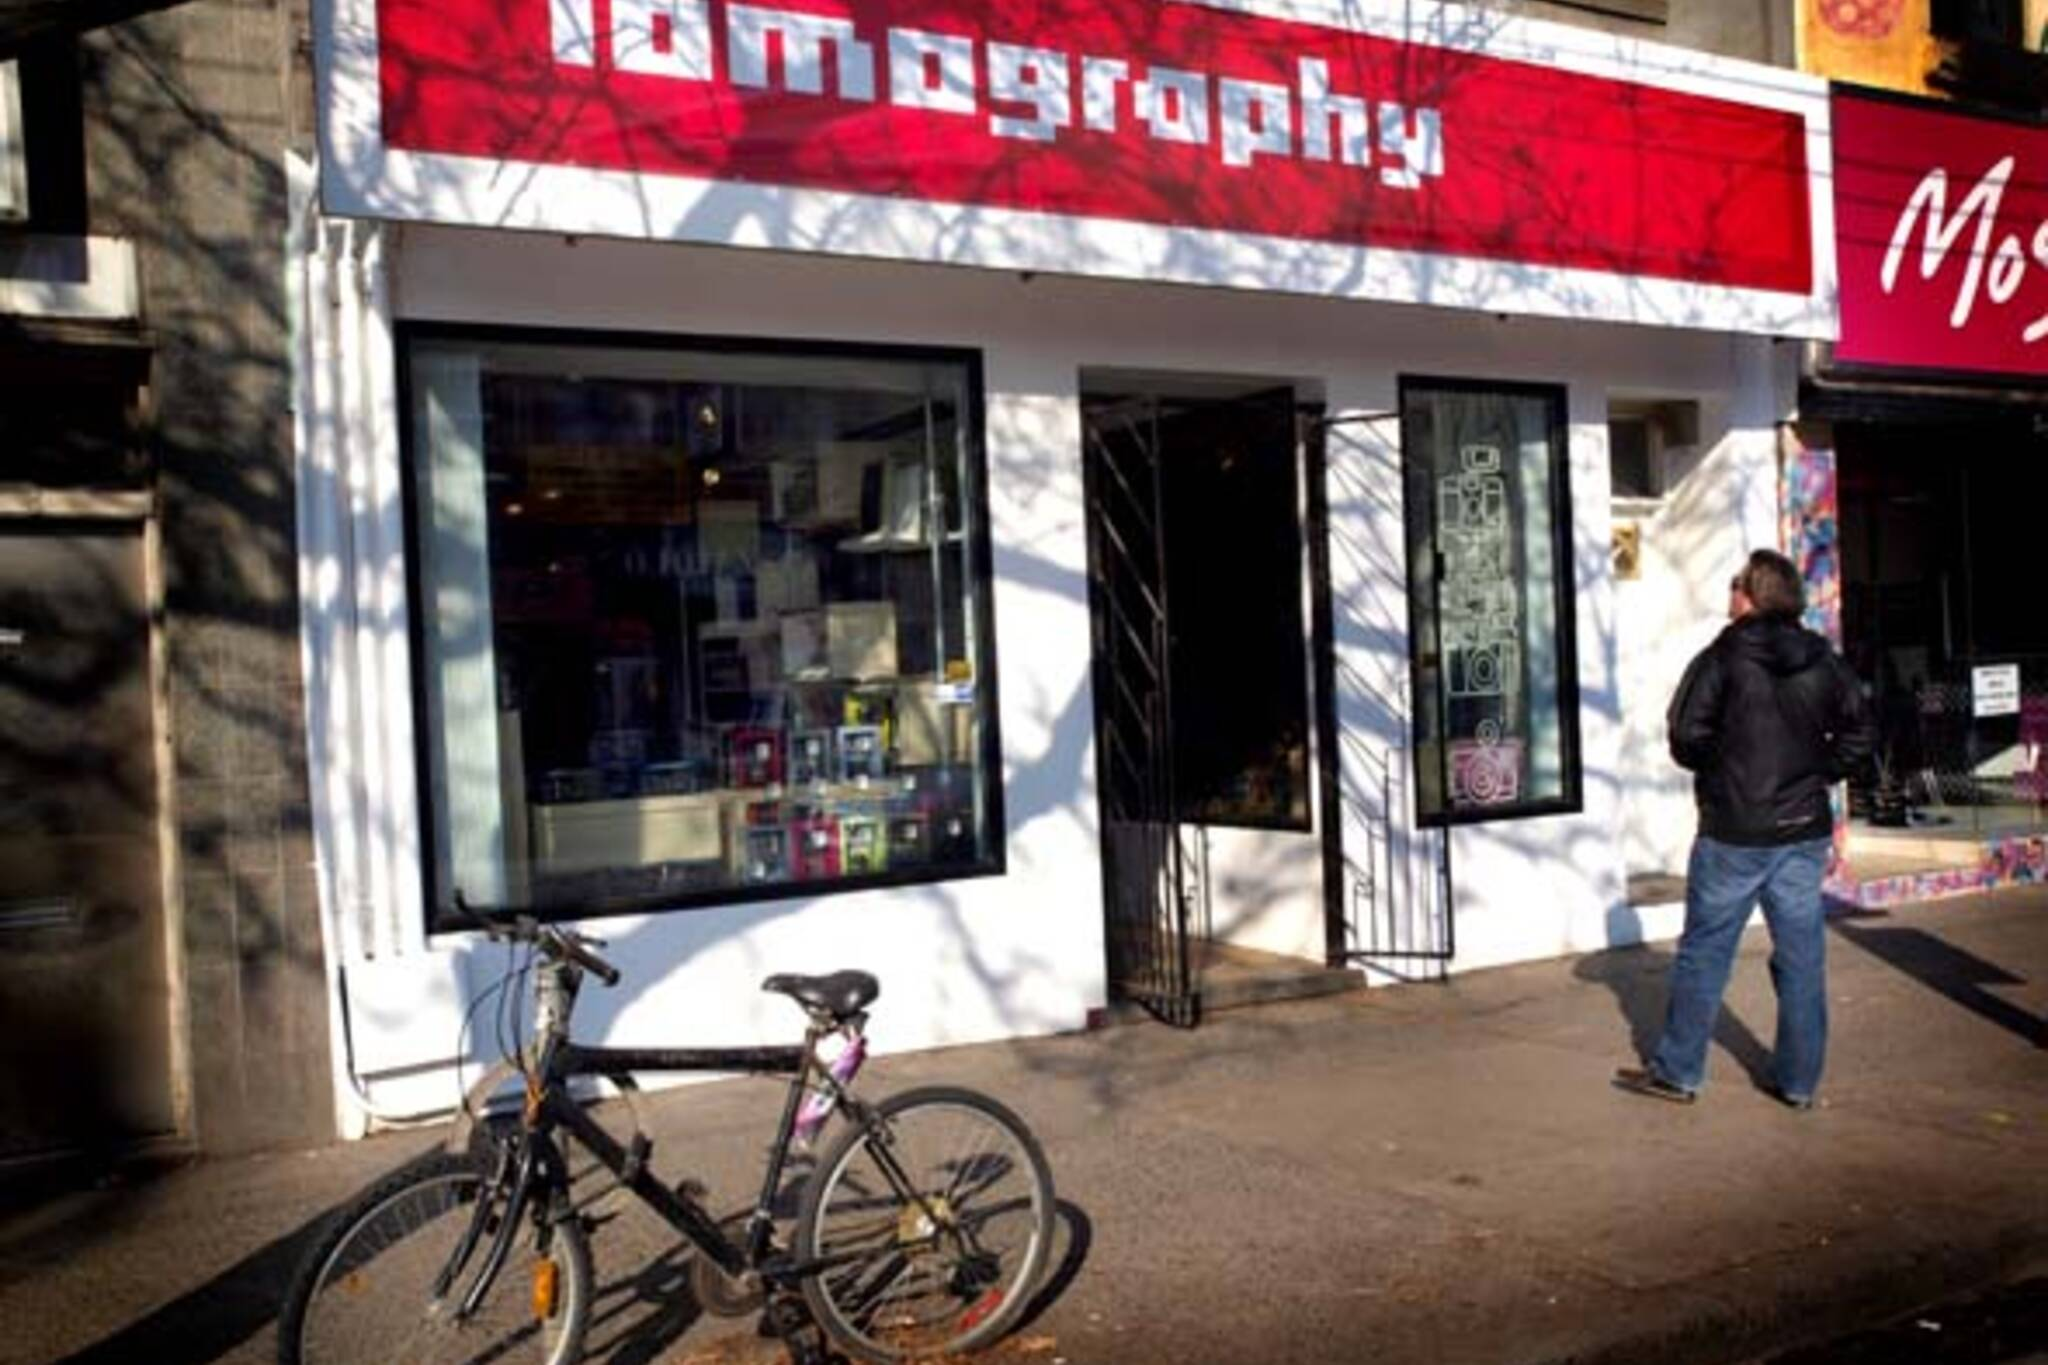 Lomography Store Toronto Closed